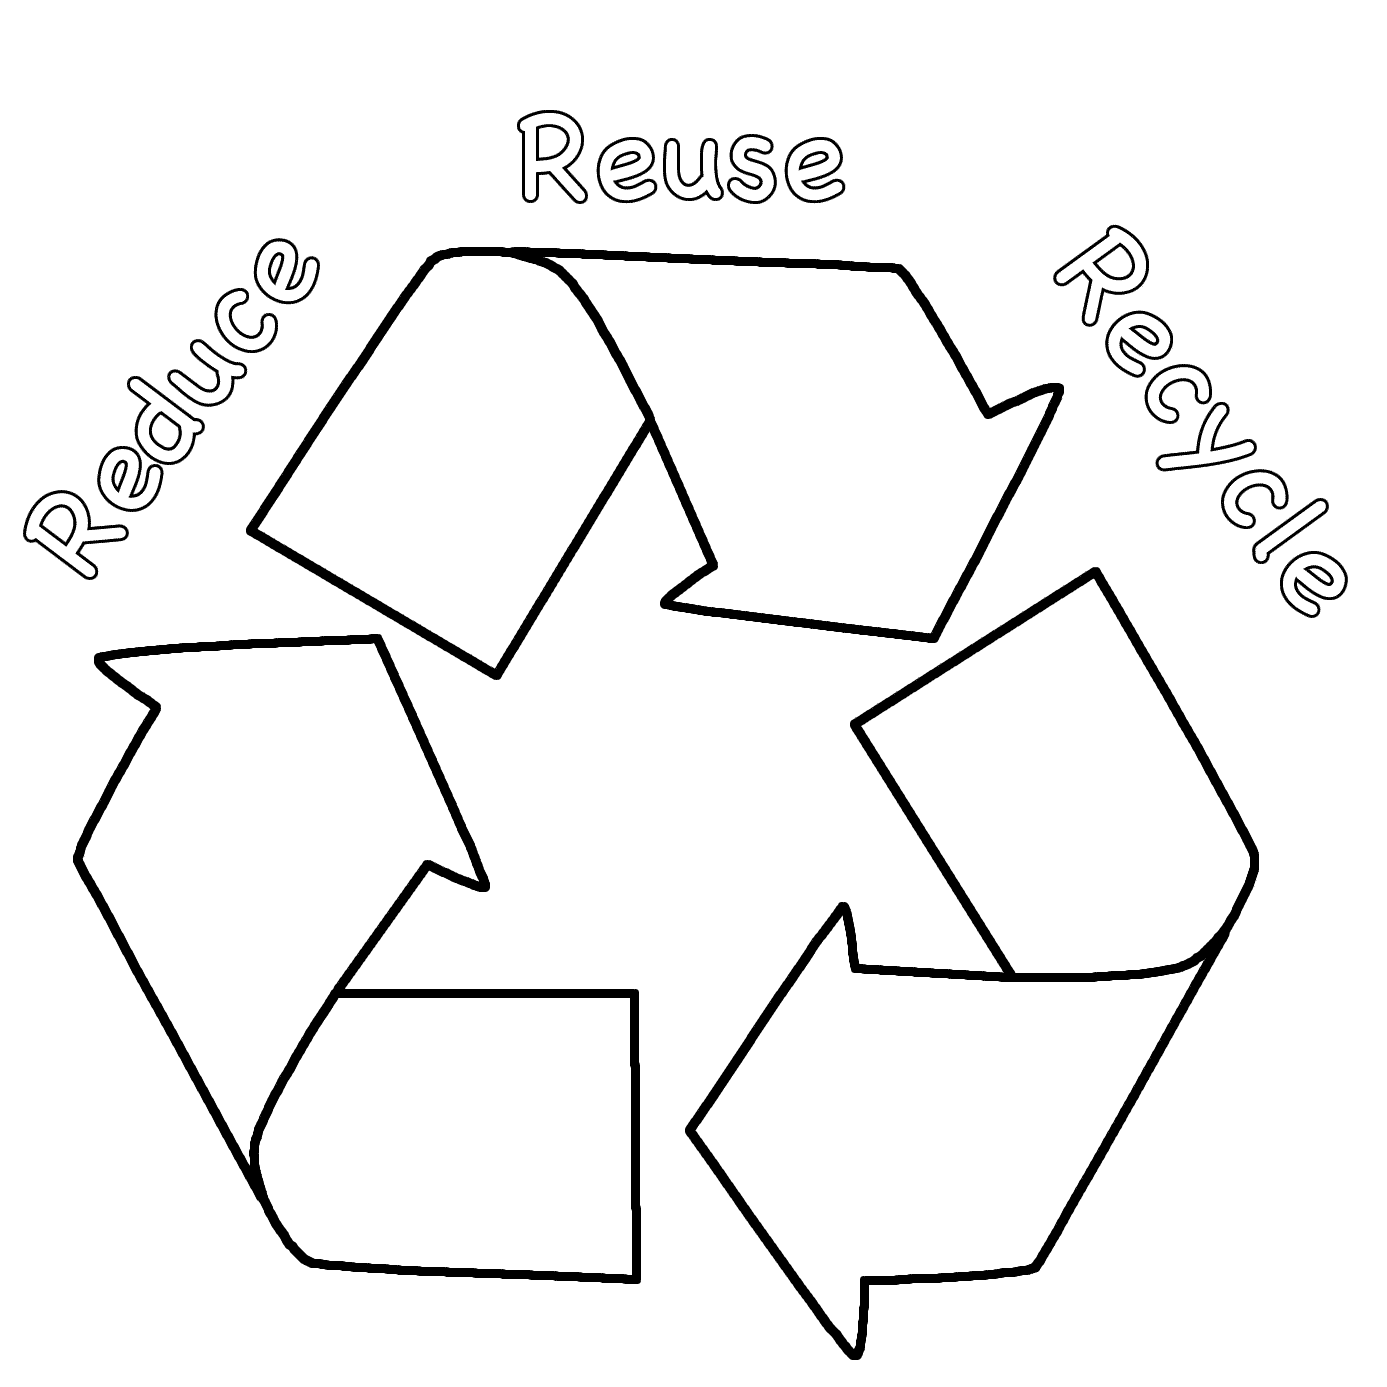 recycling-coloring-page-0012-q1